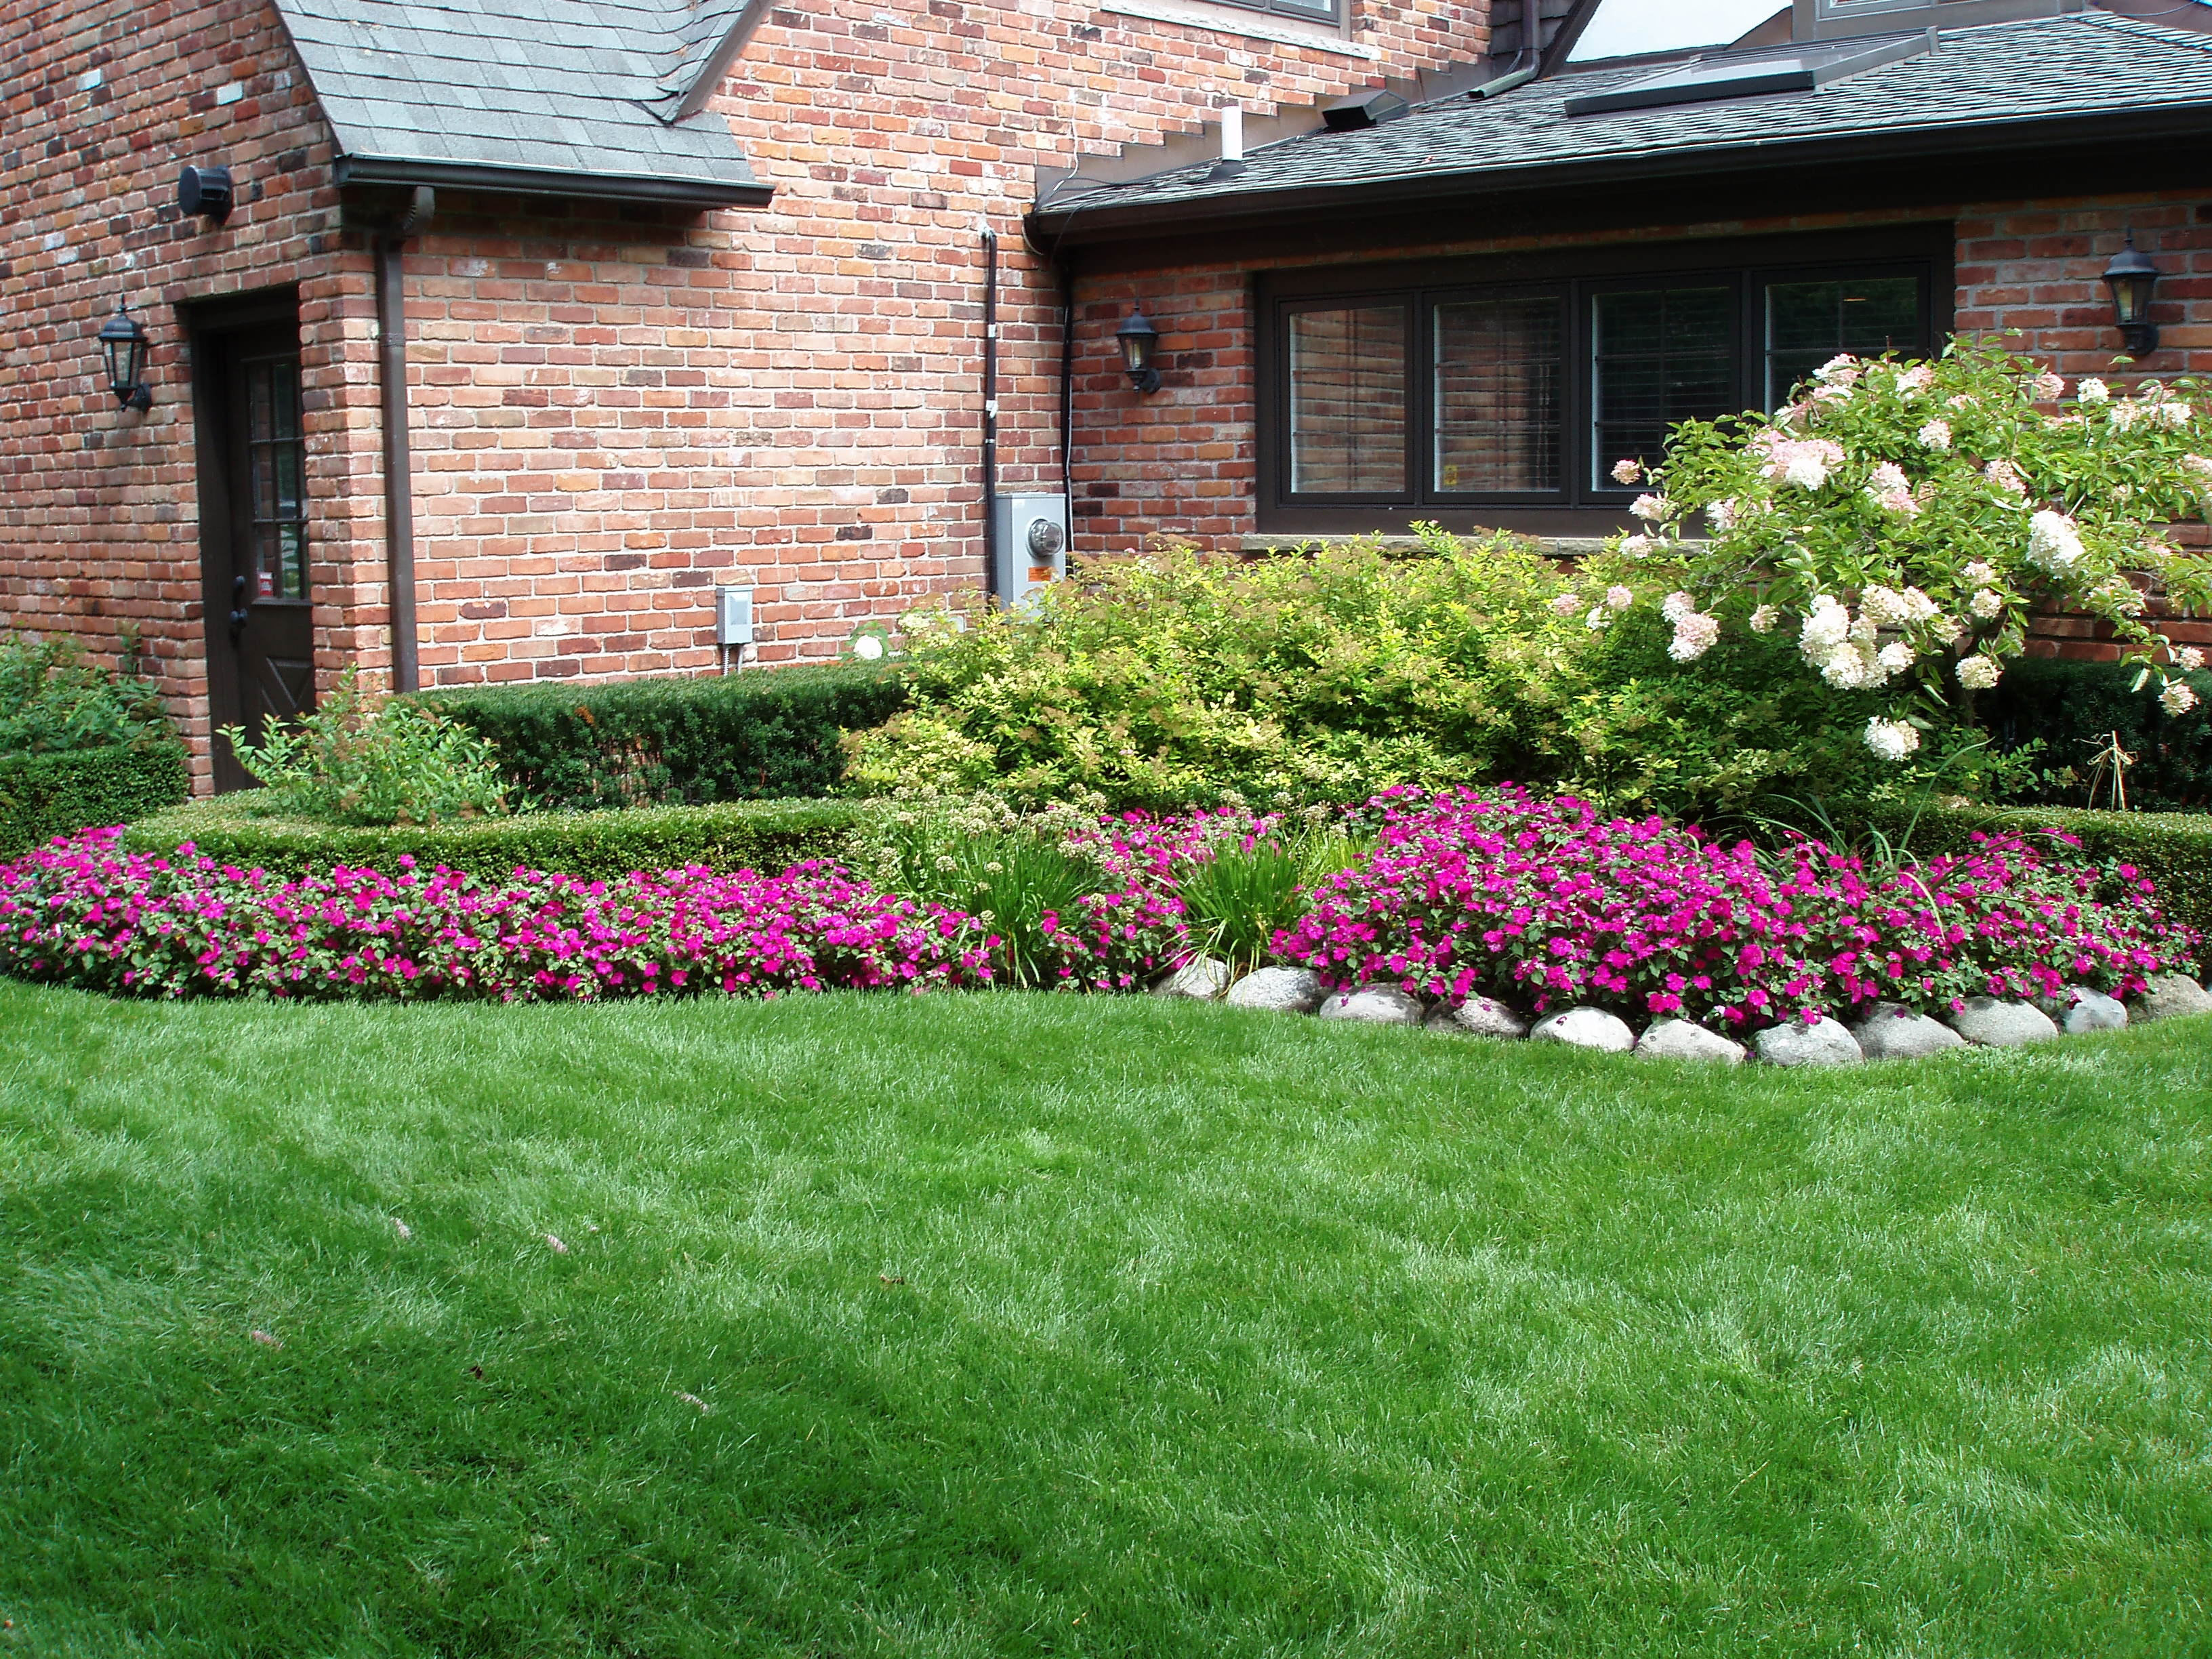 Perennials total lawn care inc full lawn maintenance for Front landscaping plans